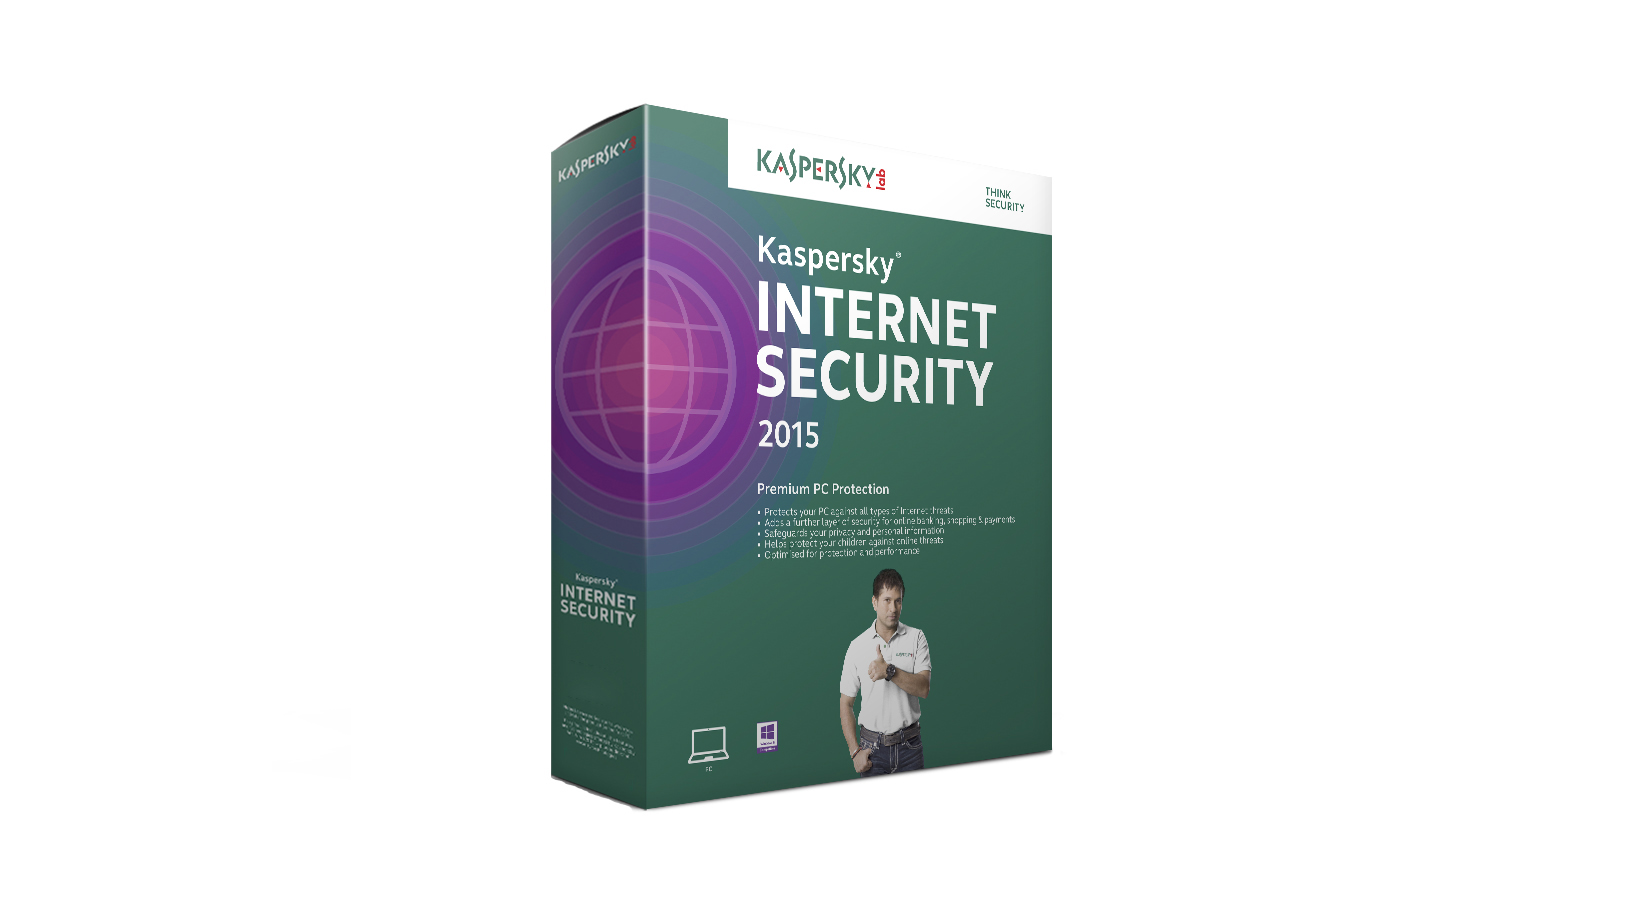 kaspersky internet security 2015 name choice. Black Bedroom Furniture Sets. Home Design Ideas